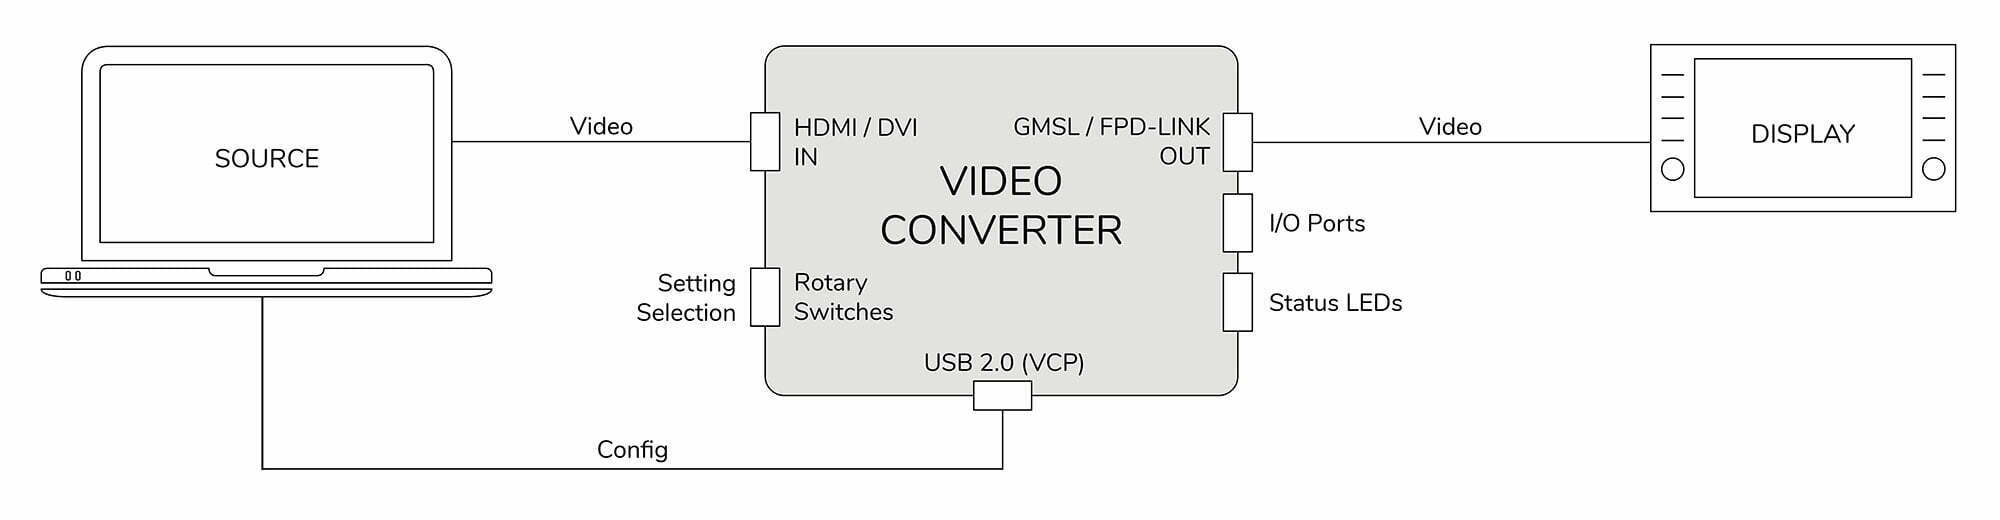 TZ Electronic Systems GmbH - Video Converter